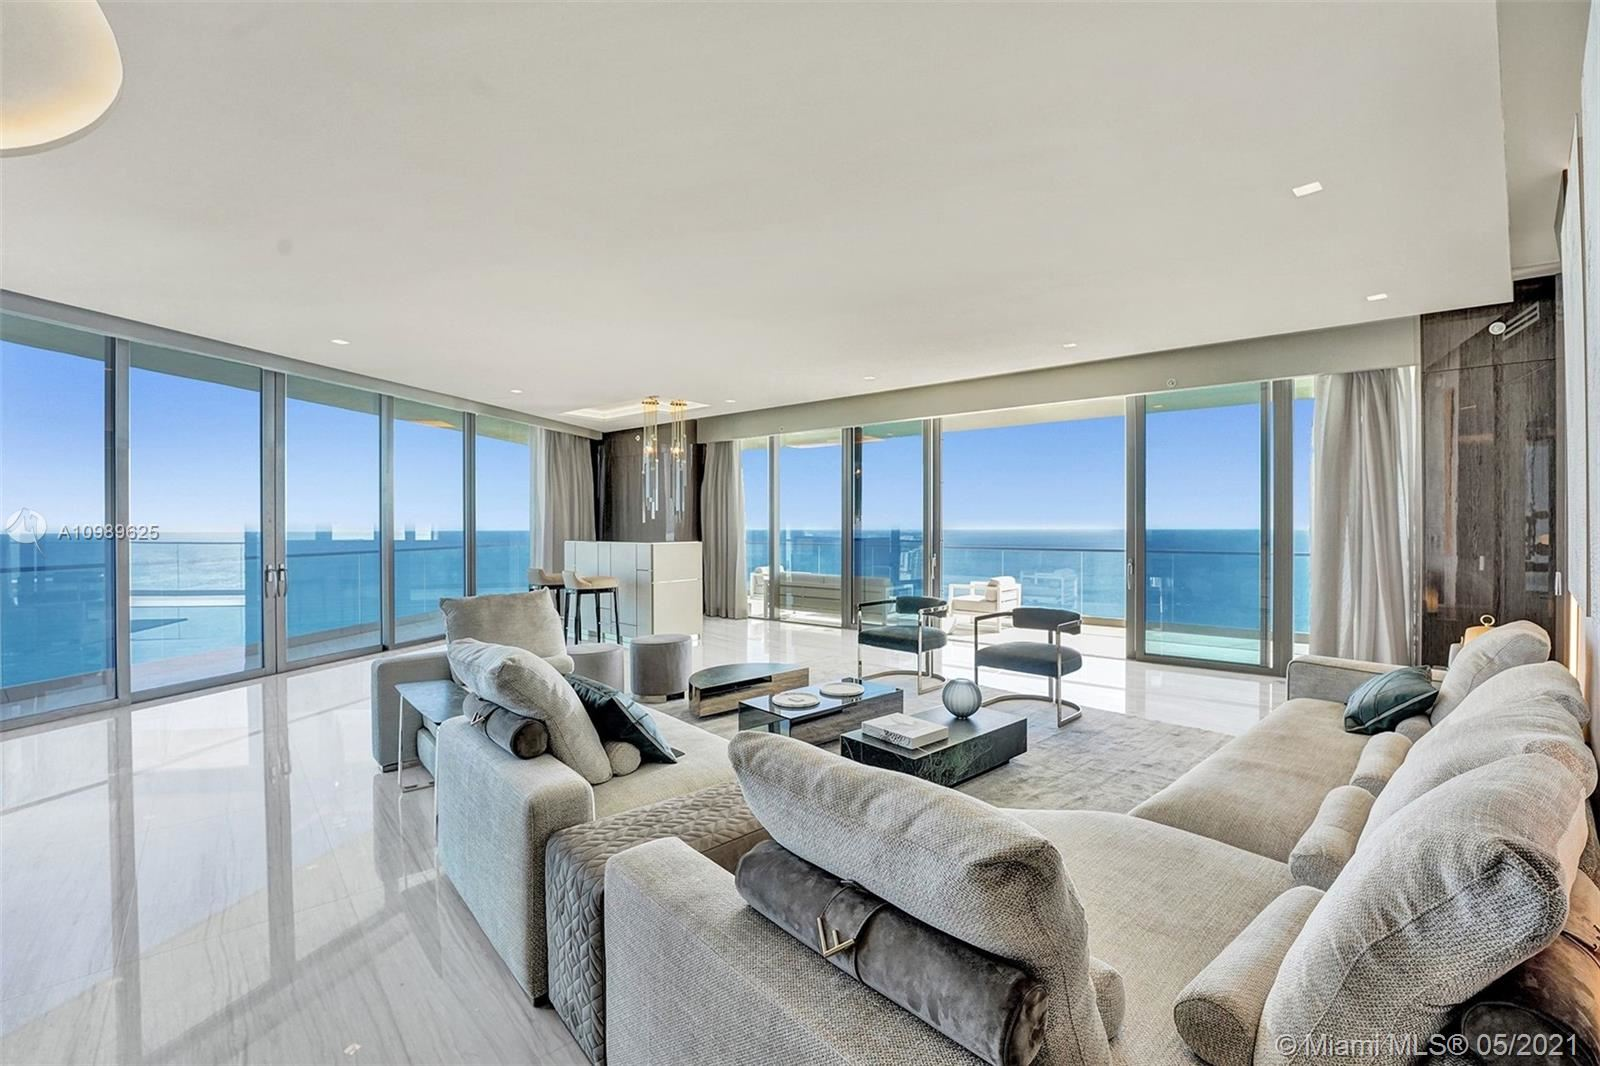 18975 Collins Ave #3700 *FINISHED*, Sunny Isles, FL 33160 - #: A10989625